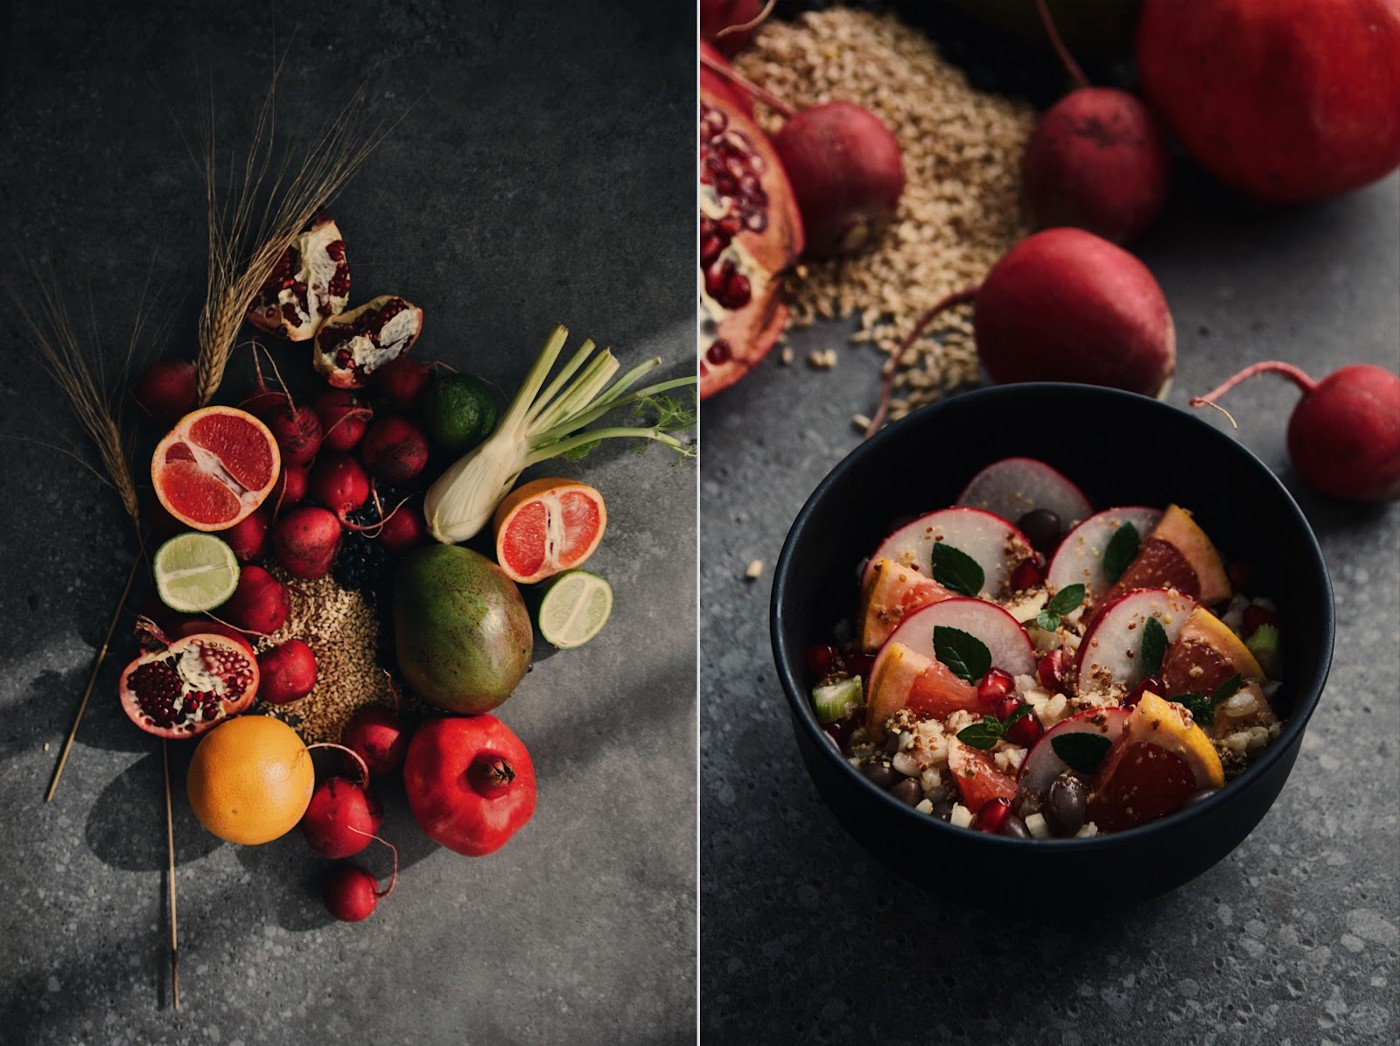 Two images of sustainable, healthy, locally grown food